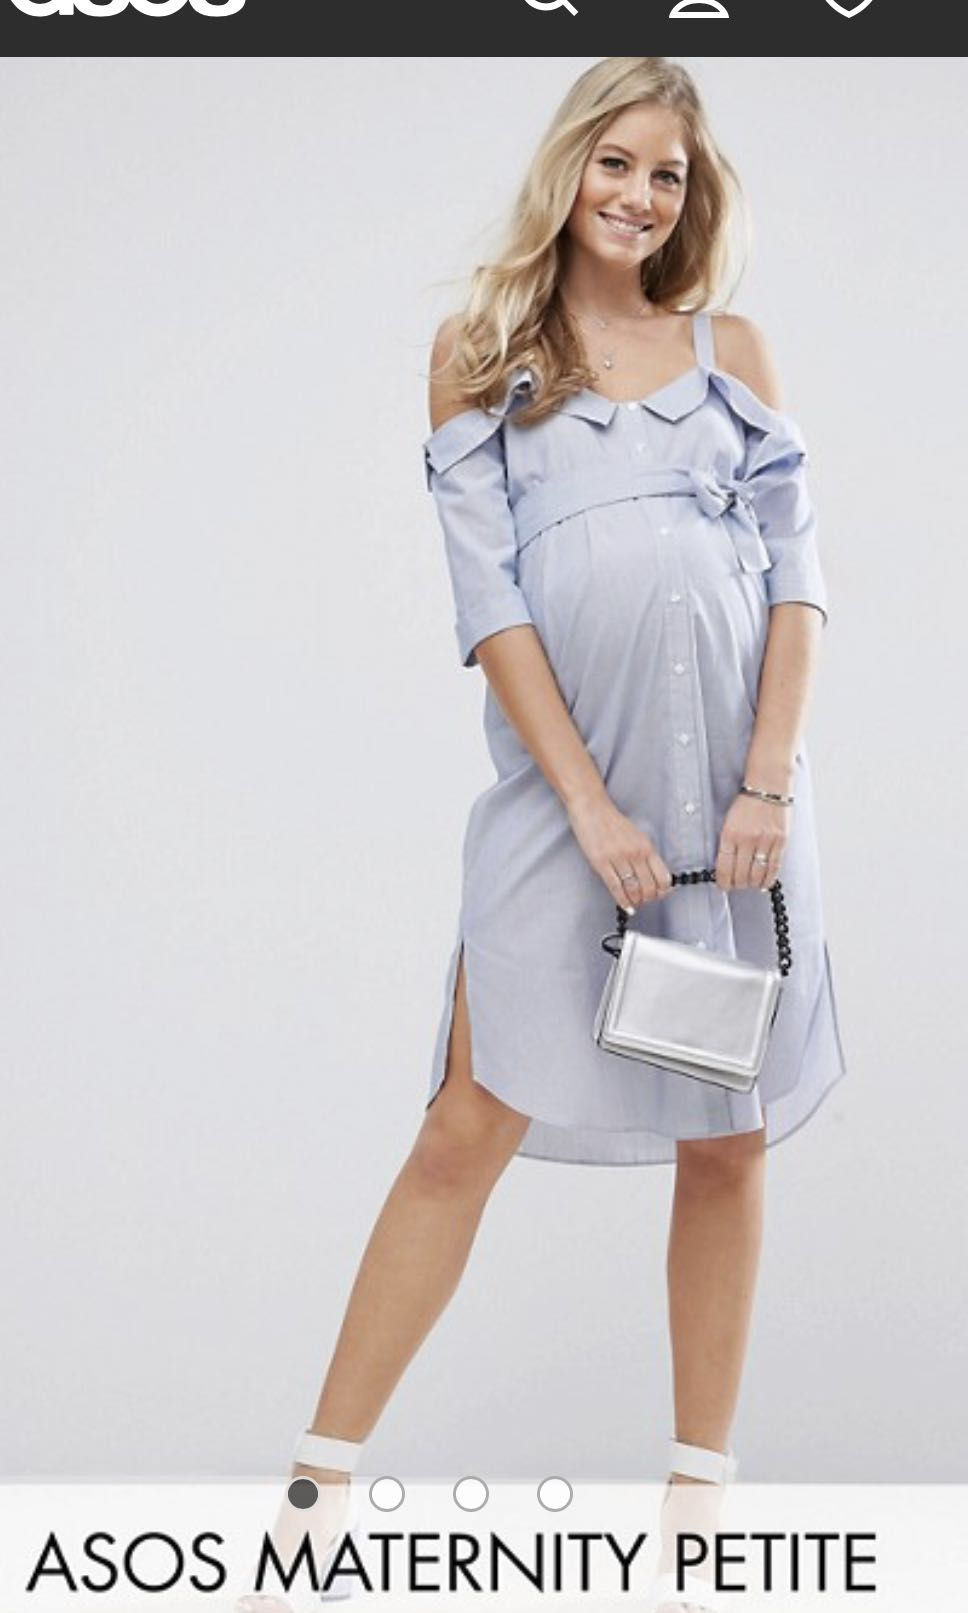 cac2305d103f7 ASOS Maternity PETITE Cold Shoulder Shirt midi dress with Foldover Detail,  Women's Fashion, Clothes, Dresses & Skirts on Carousell